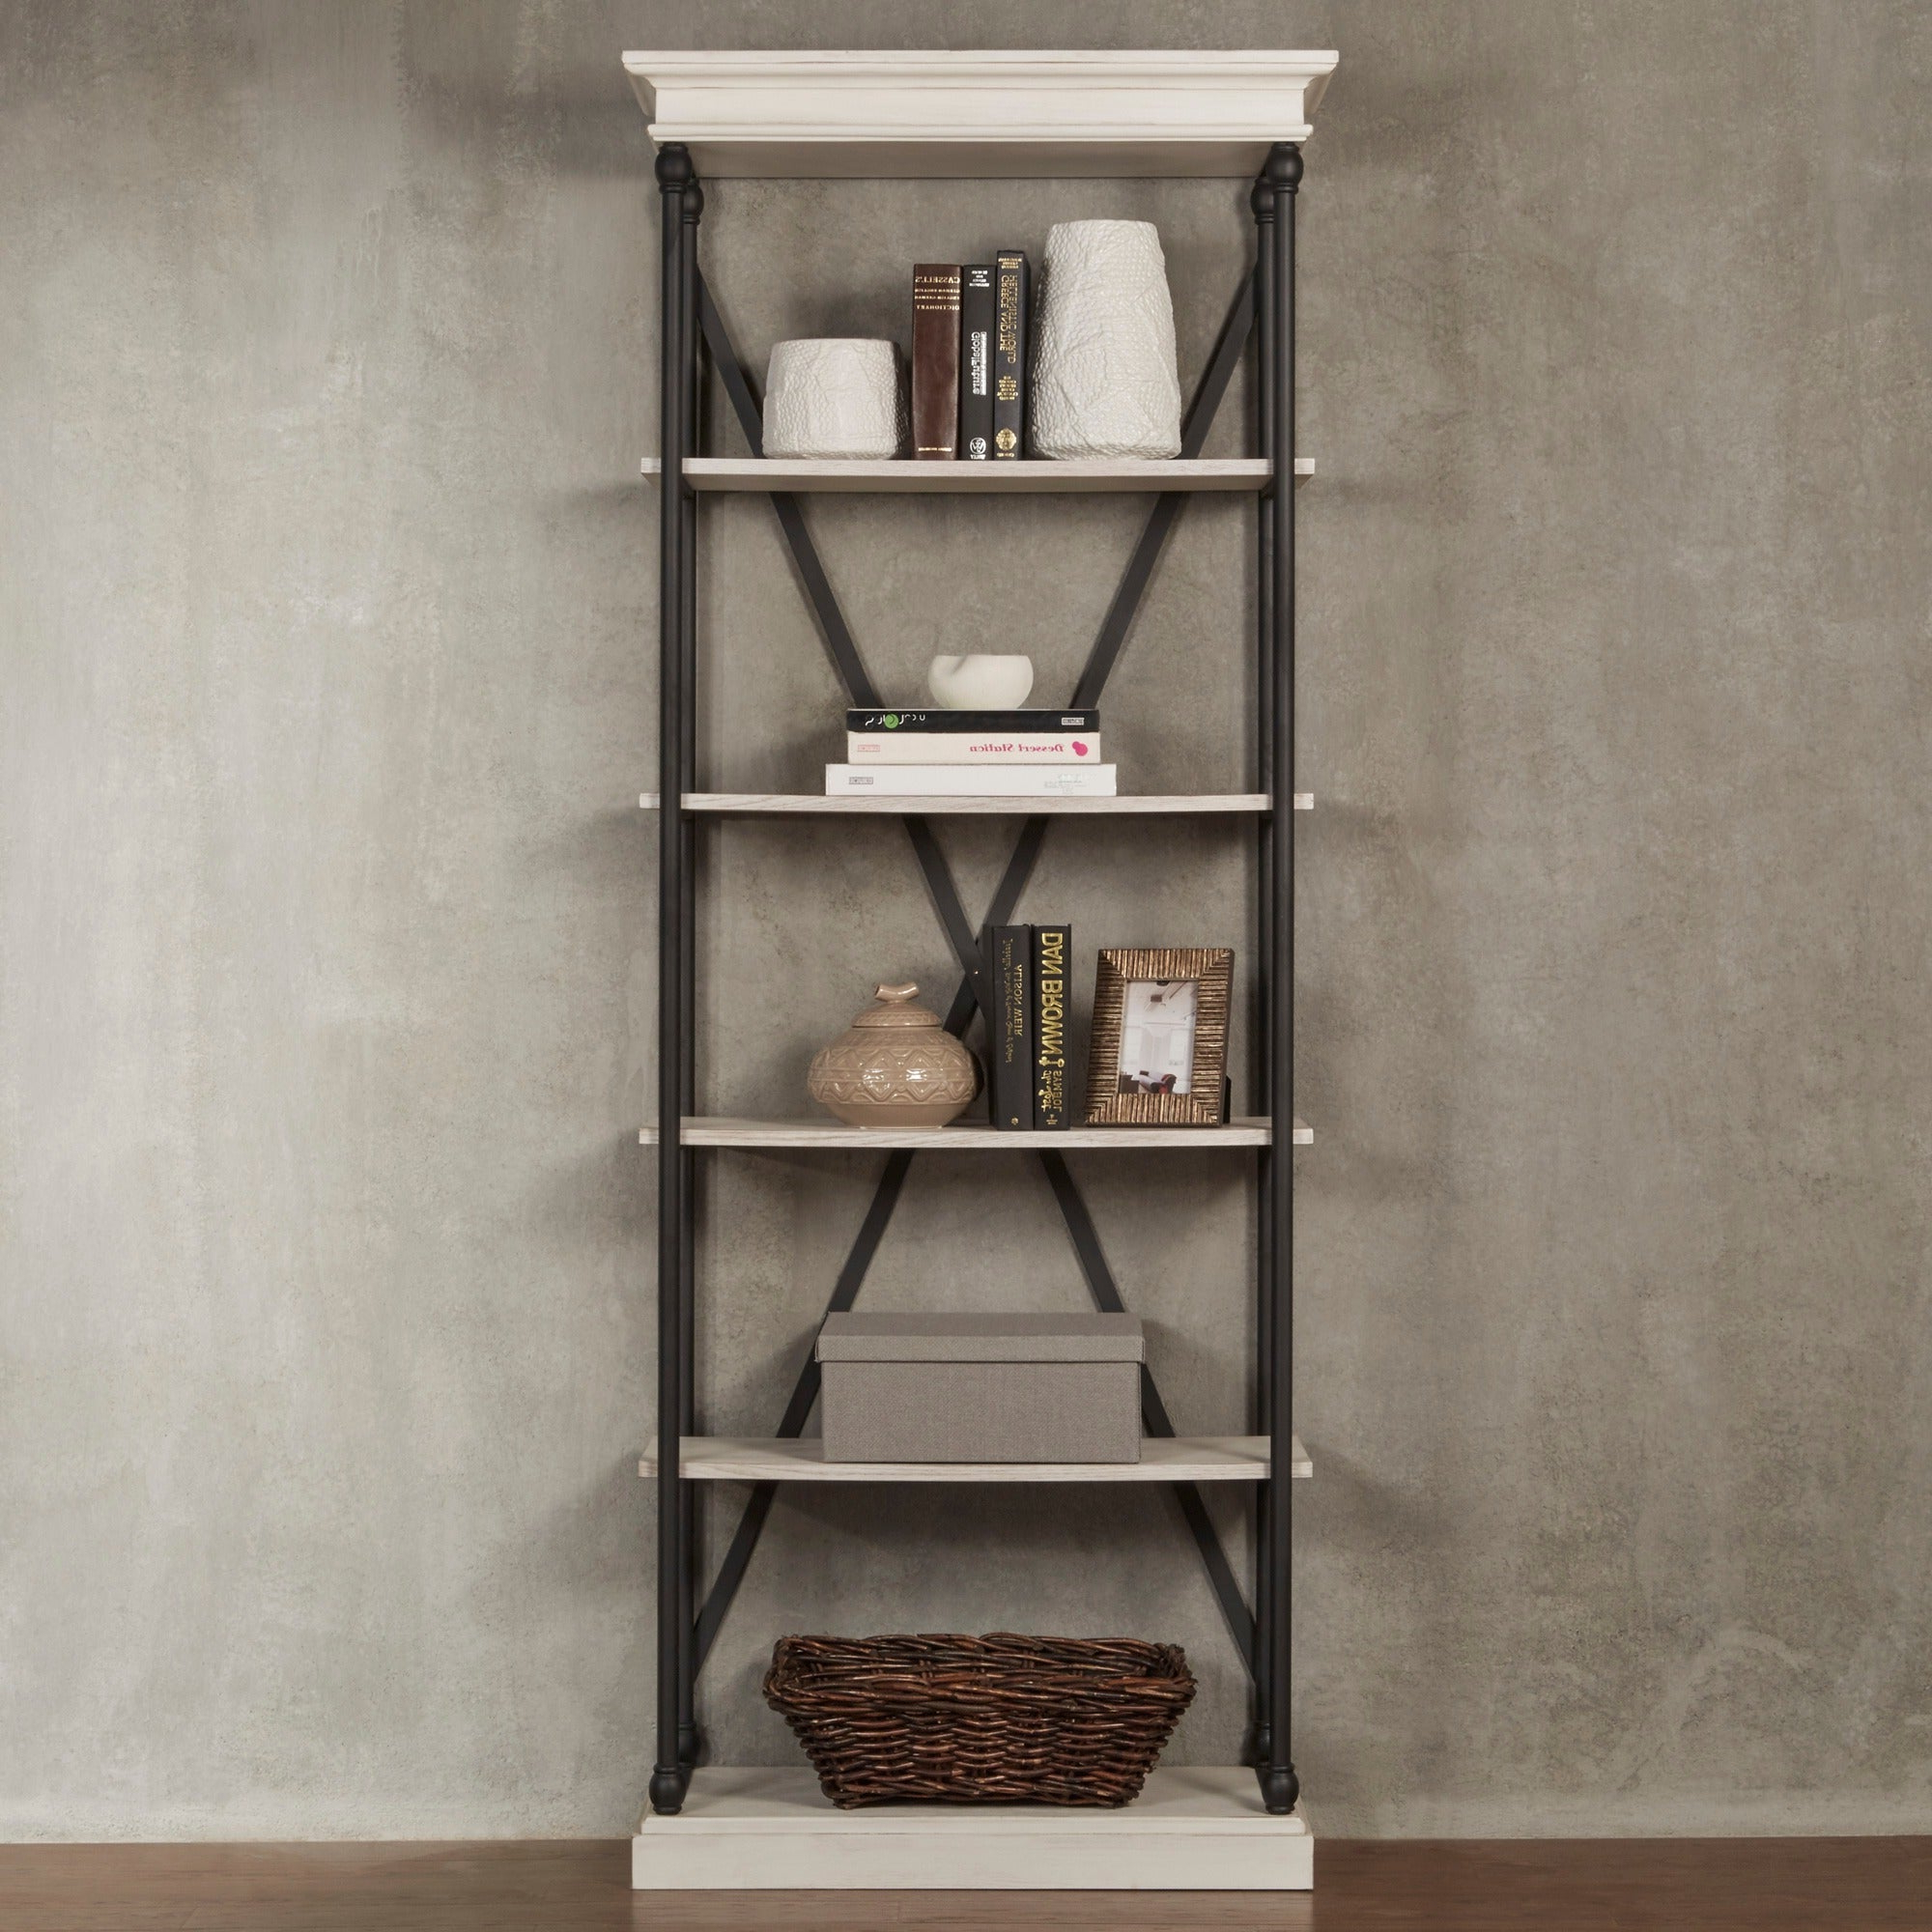 Current Adair Etagere Bookcases Pertaining To Barnstone Cornice Etagere Bookcaseinspire Q Artisan (View 17 of 20)